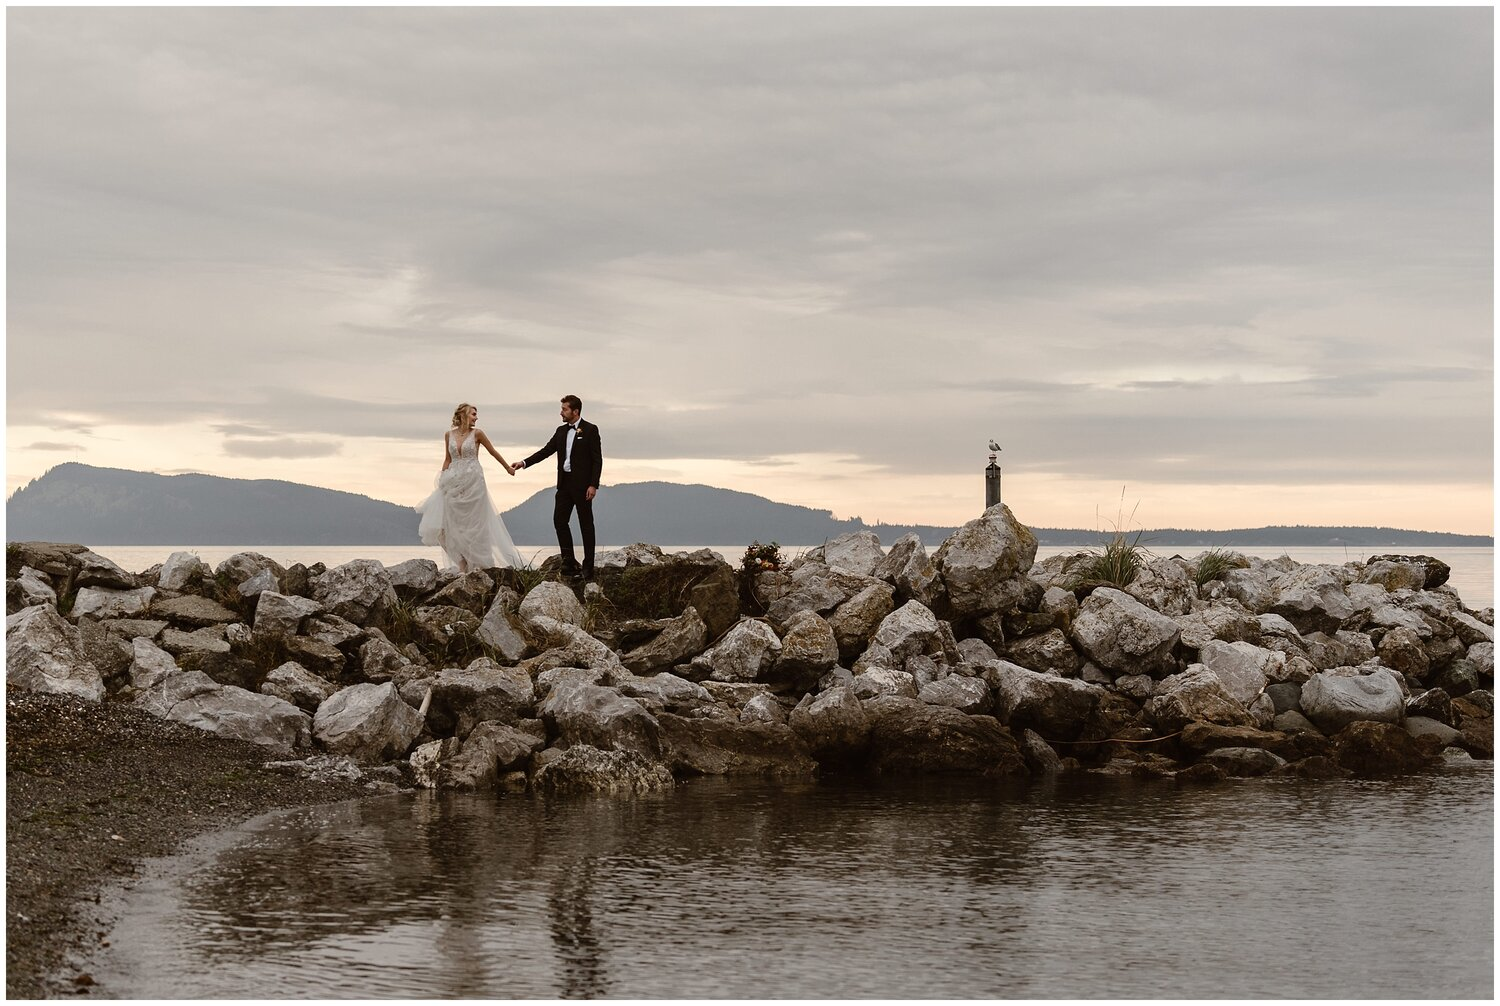 Bride and groom walk along the water on their wedding day.